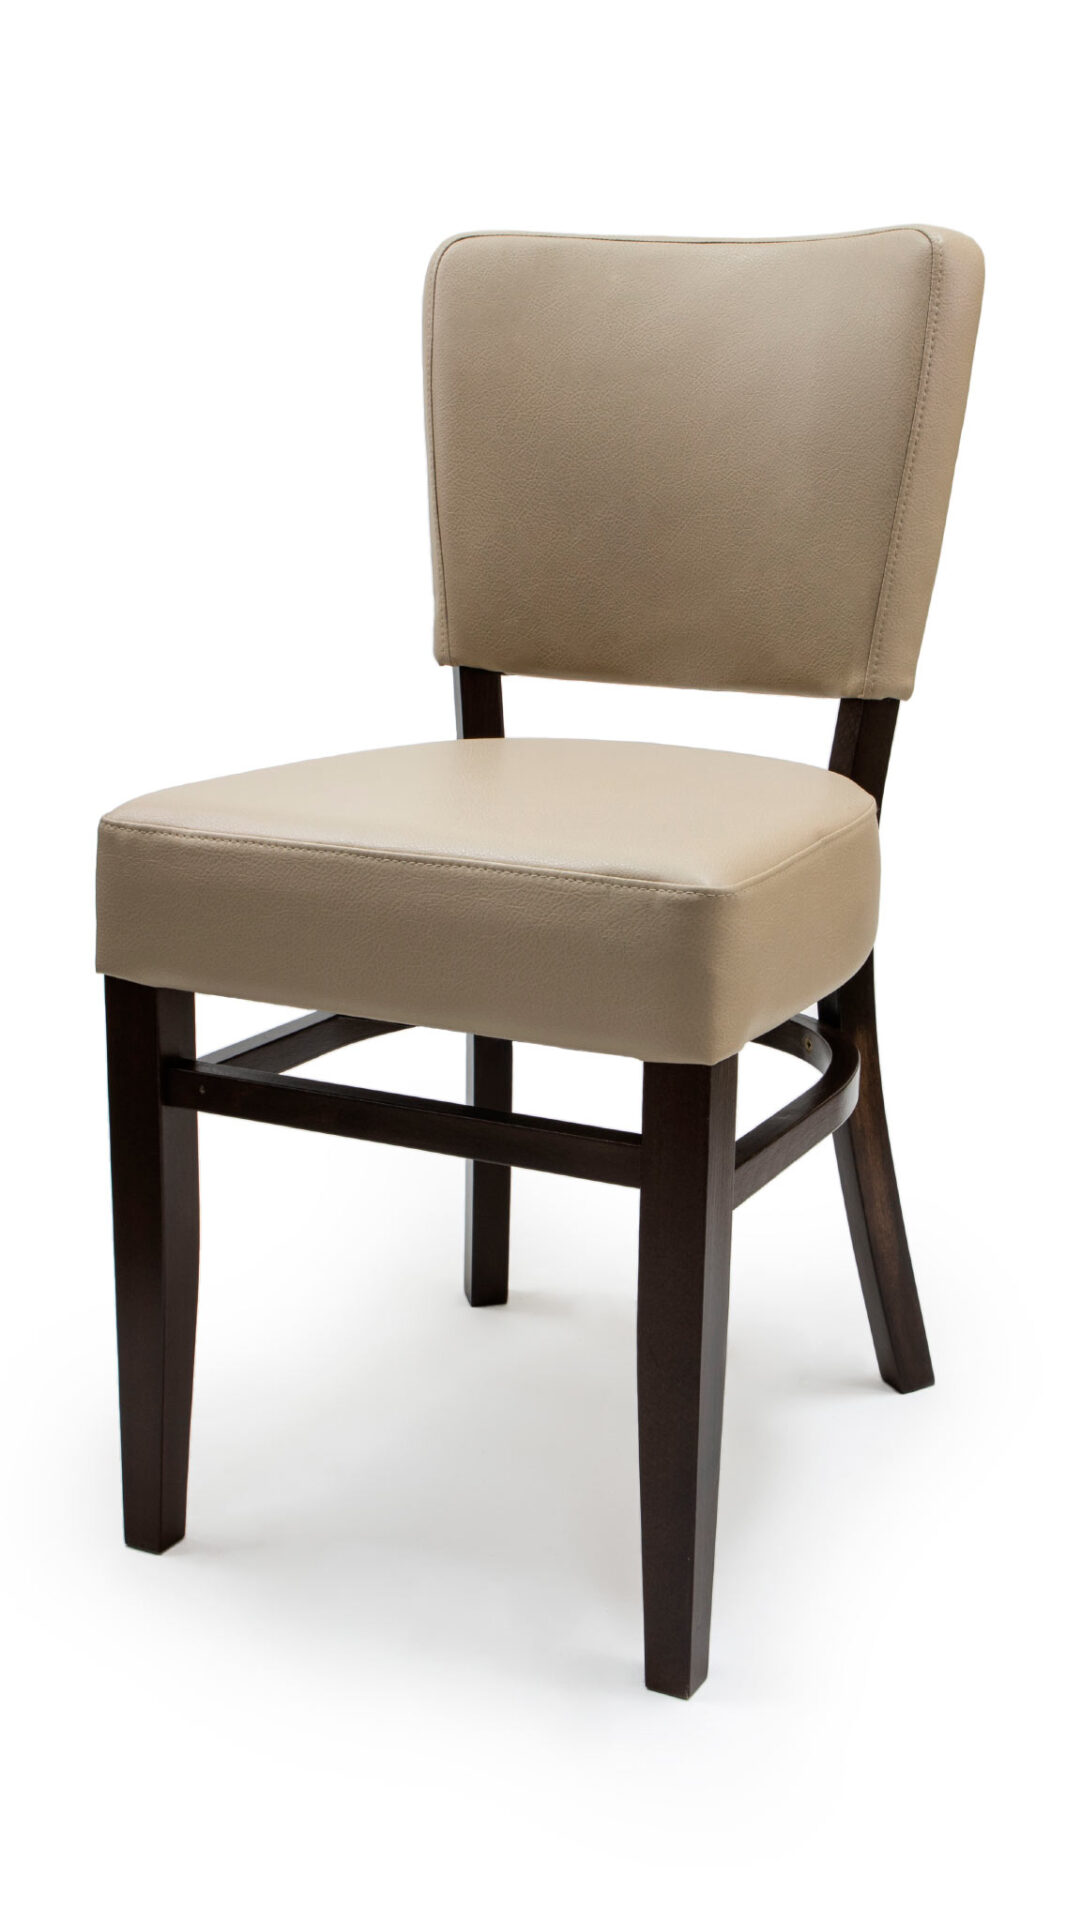 Solid Wood Chair made of Beech - 1379S